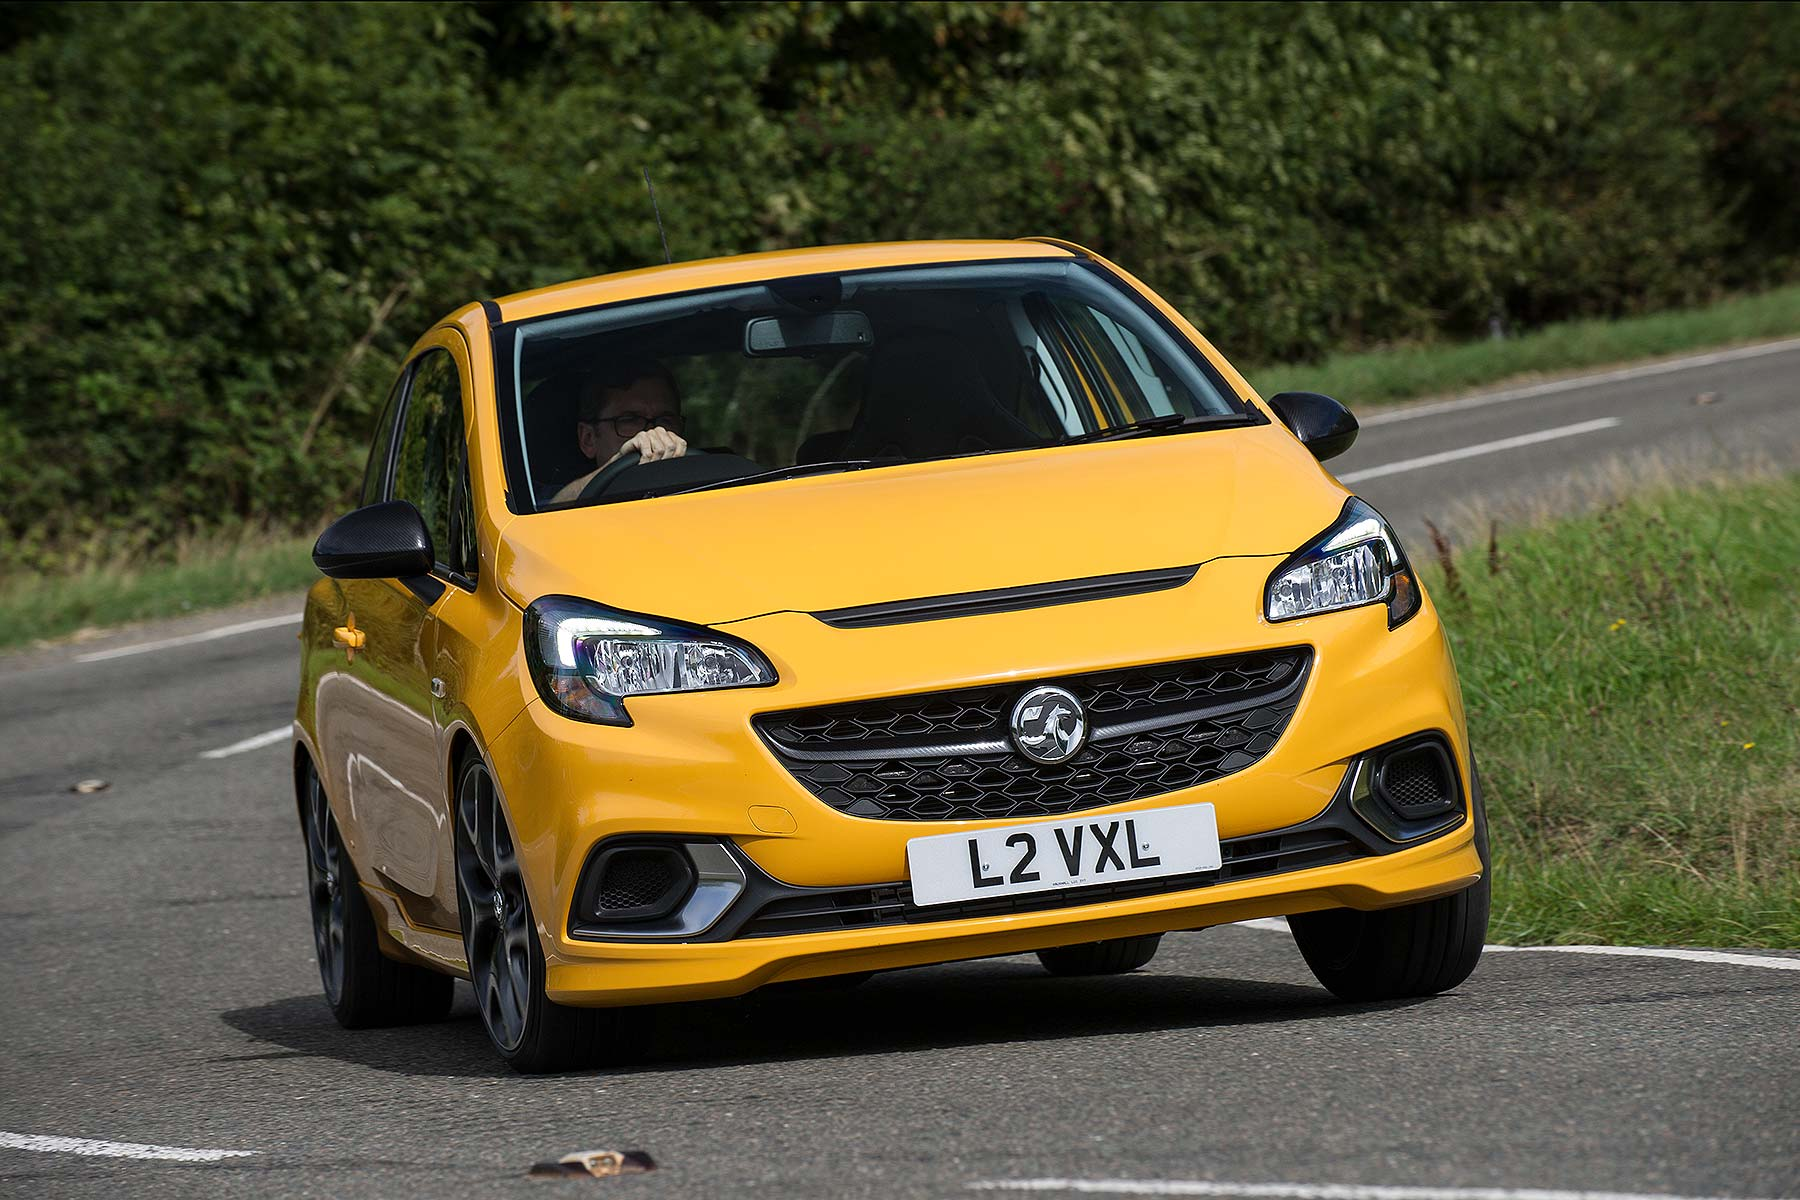 2018 vauxhall corsa gsi surprise package but surprise price motoring research. Black Bedroom Furniture Sets. Home Design Ideas